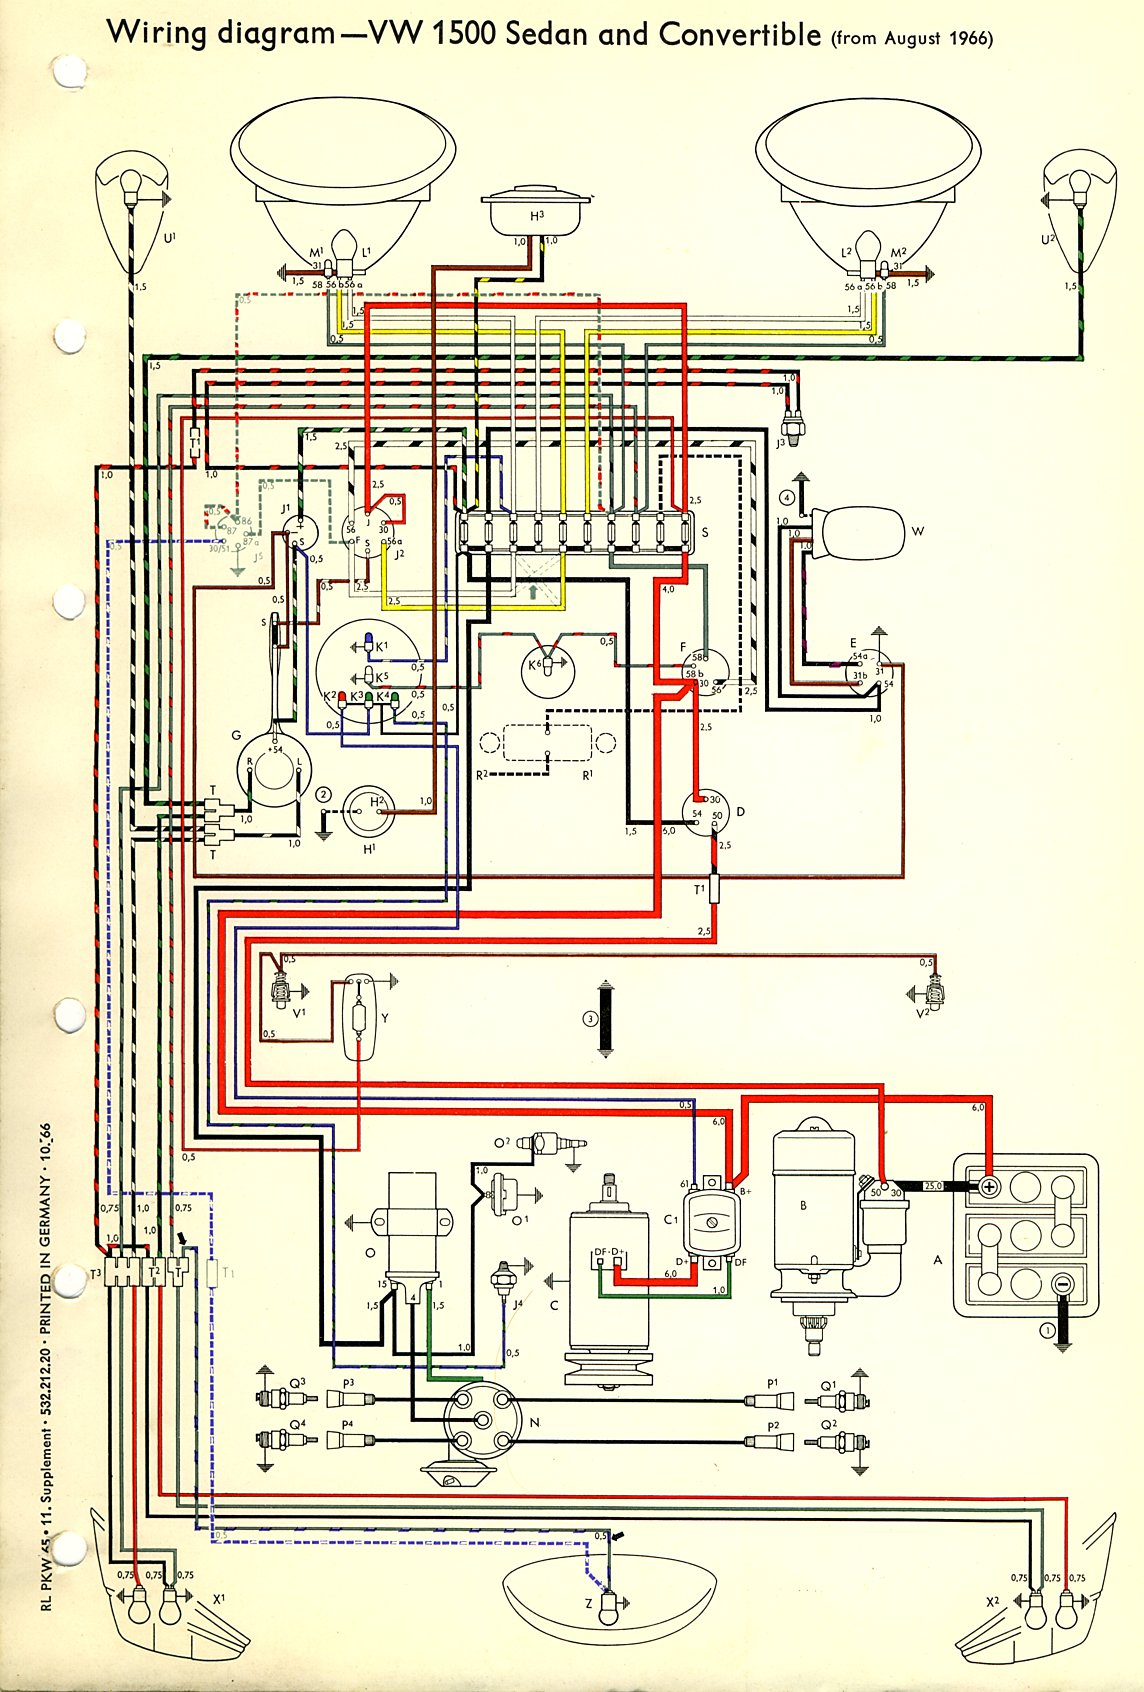 6 1 Vw Wire Diagram - Trusted Wiring Diagram •